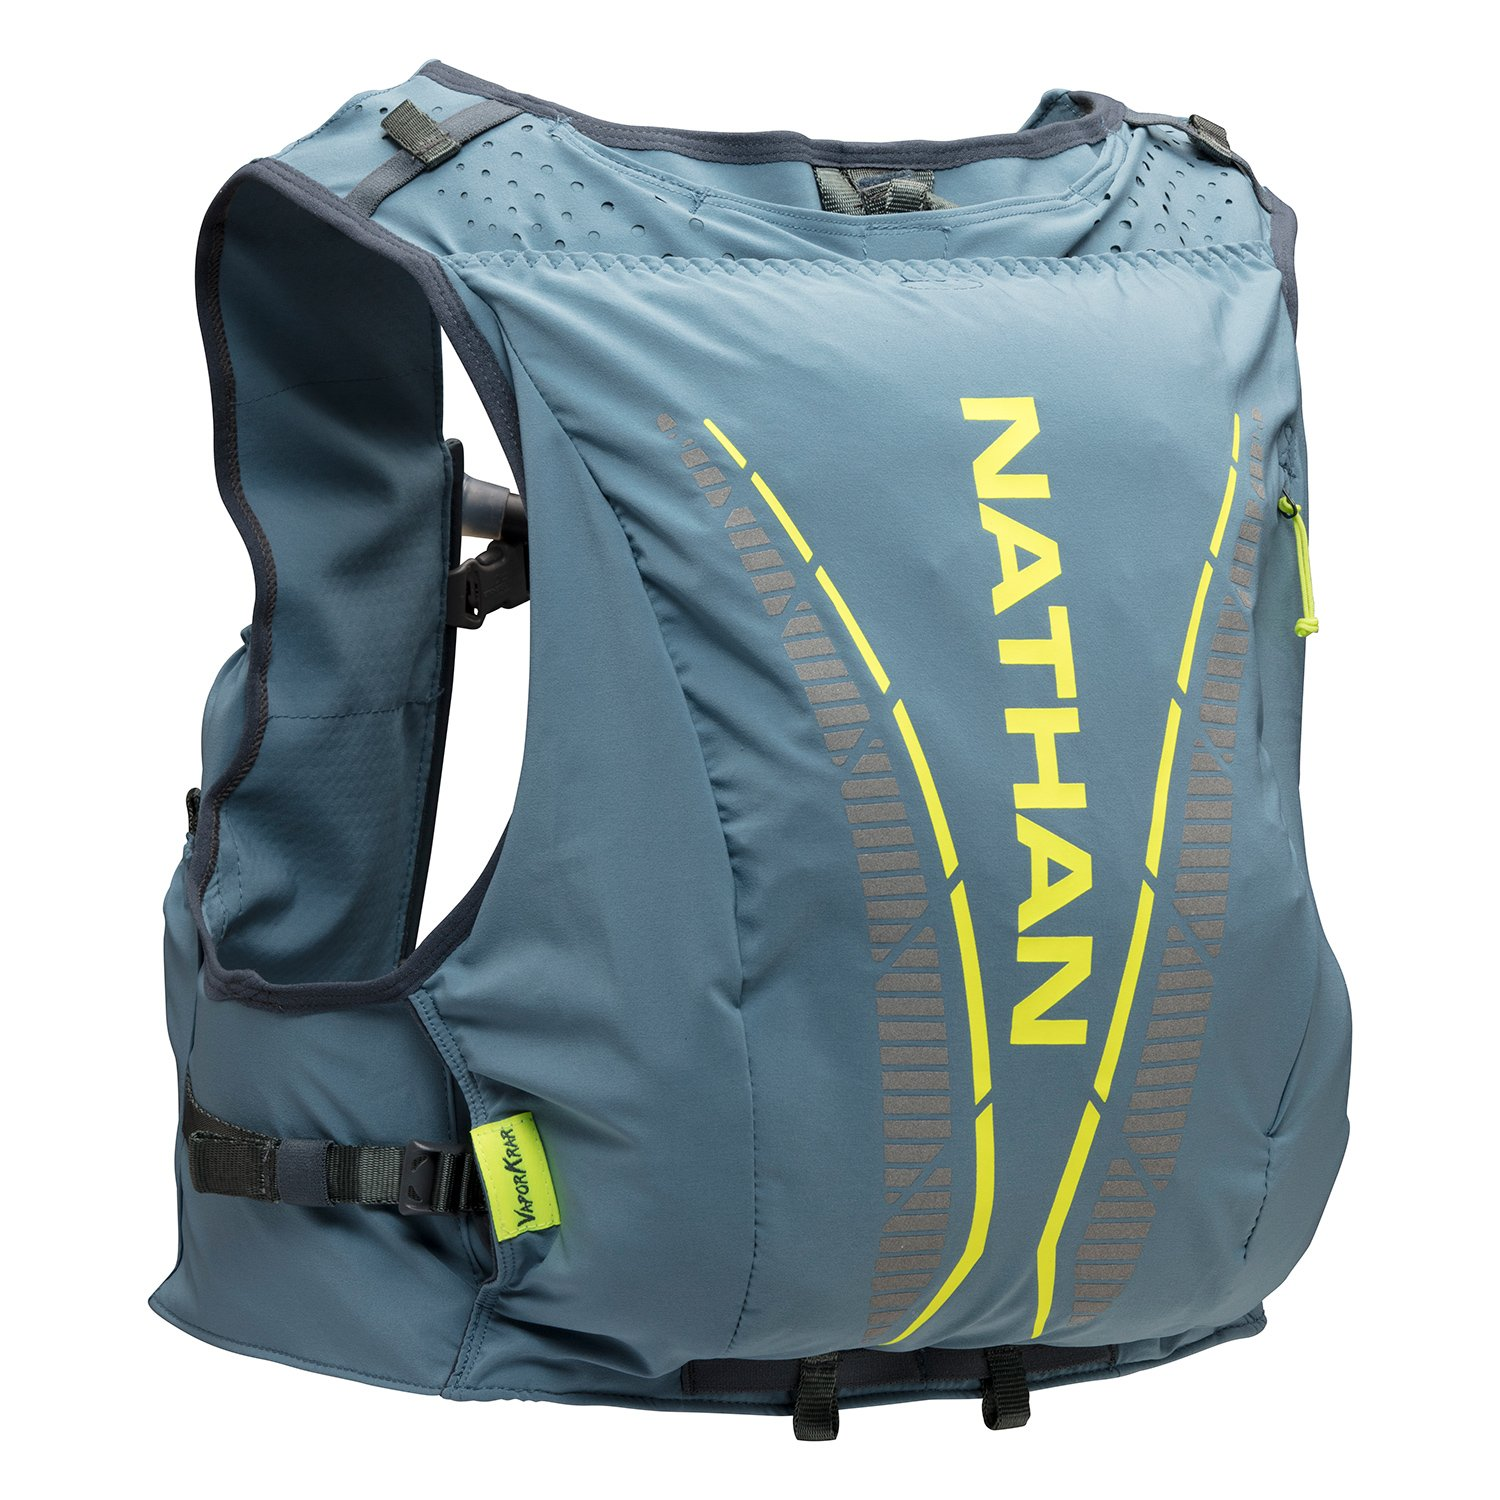 Nathan NS4536 Vaporkrar Hydaration Pack Running Vest with 1.8L Bladder, Blue Stone, Small by Nathan (Image #1)